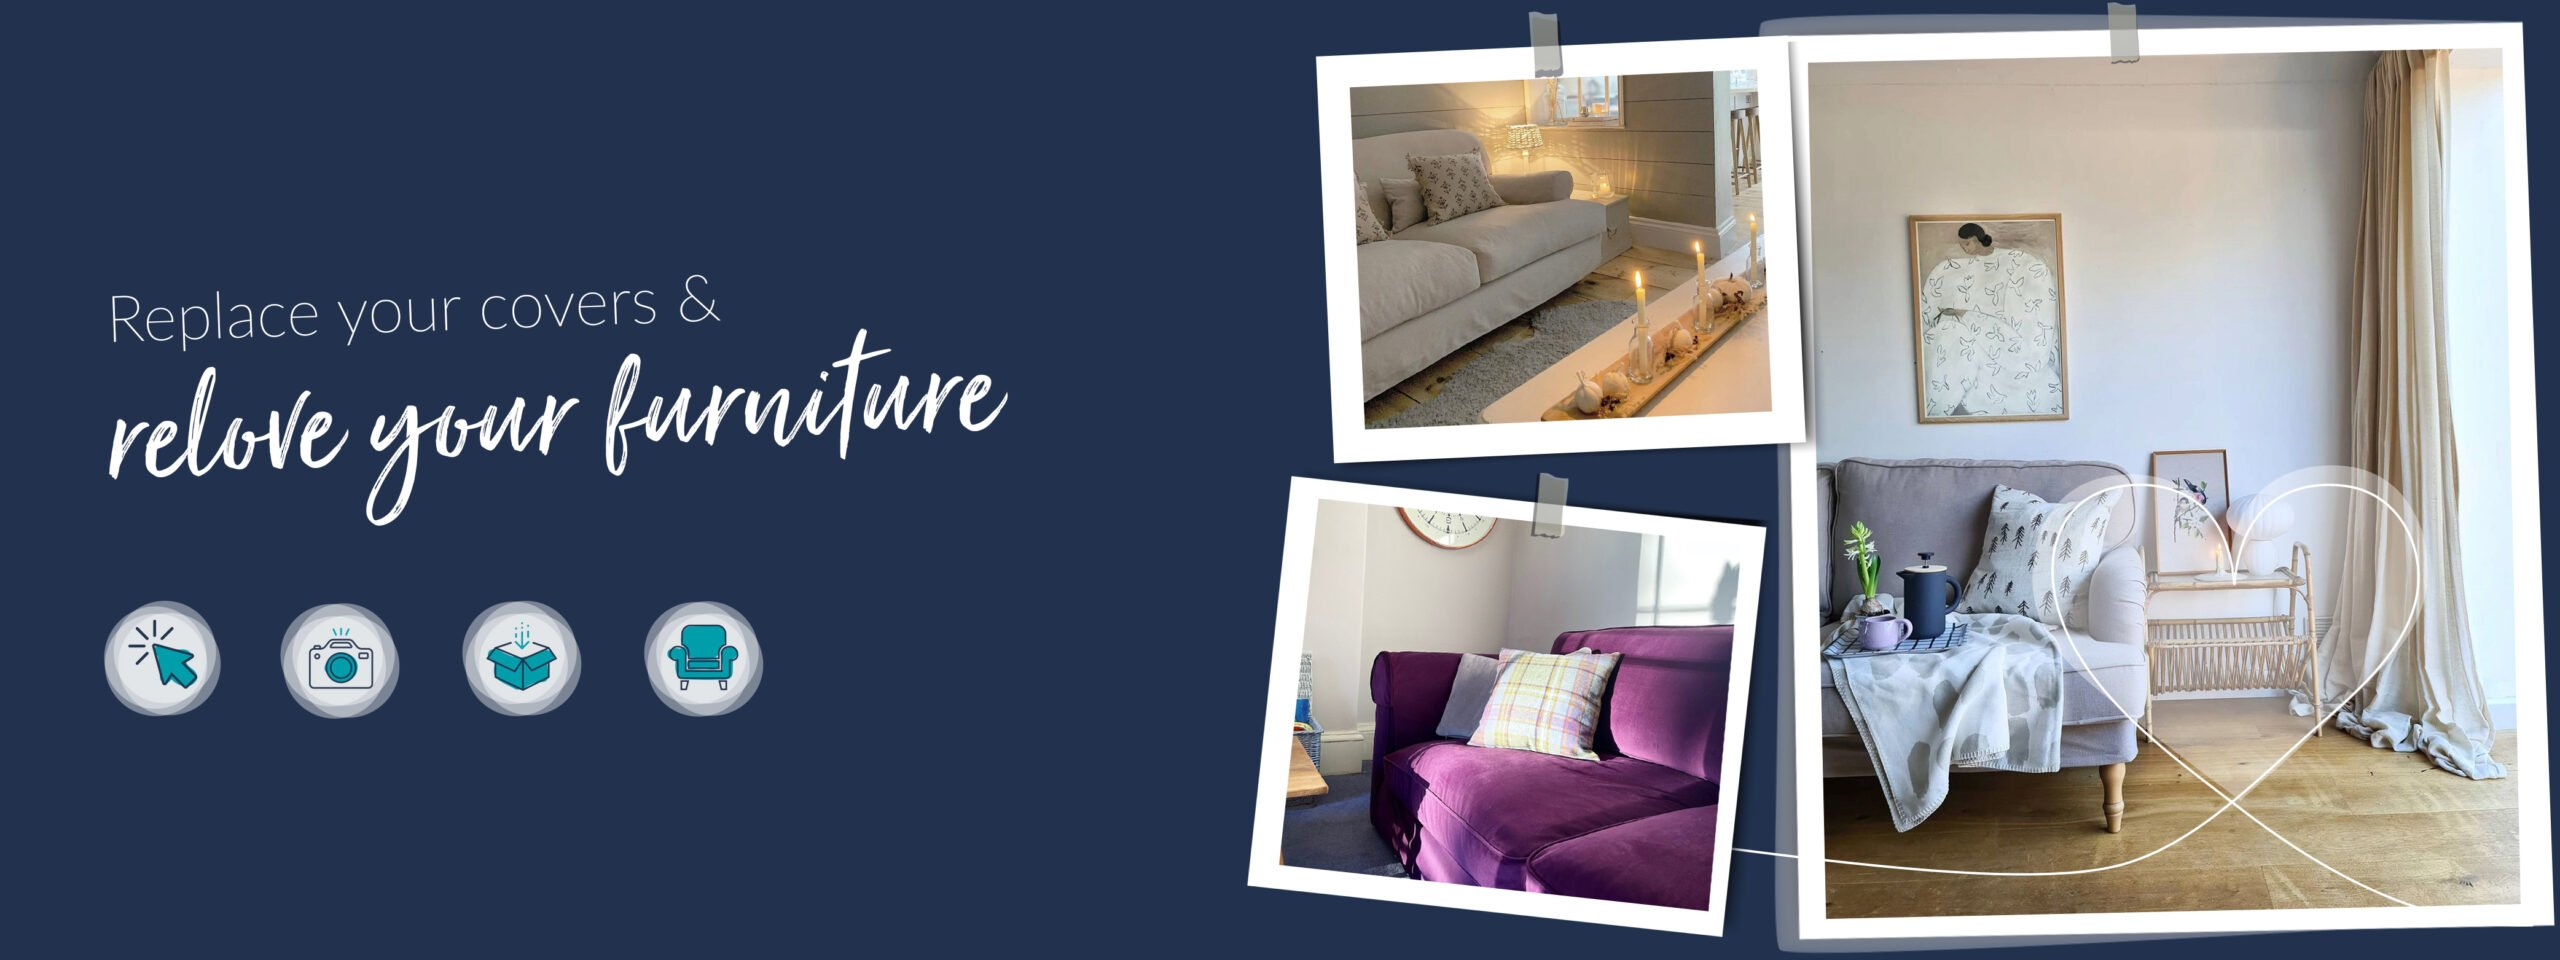 Replace your covers & relove oyur furniture with Cover My Furniture